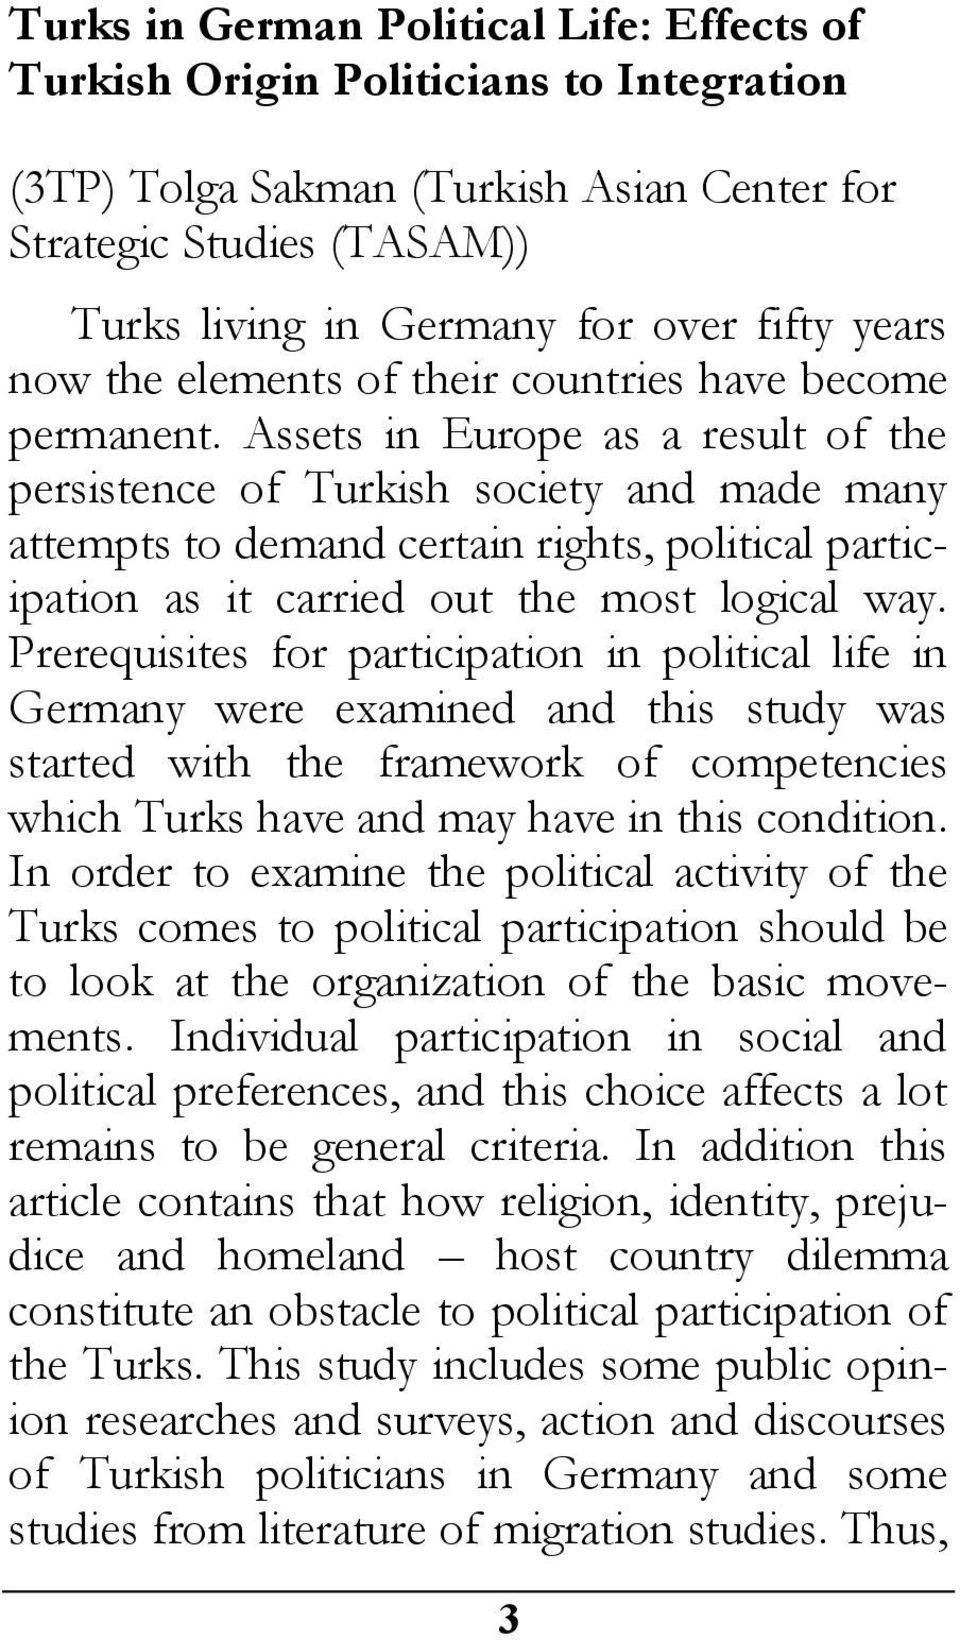 Assets in Europe as a result of the persistence of Turkish society and made many attempts to demand certain rights, political participation as it carried out the most logical way.